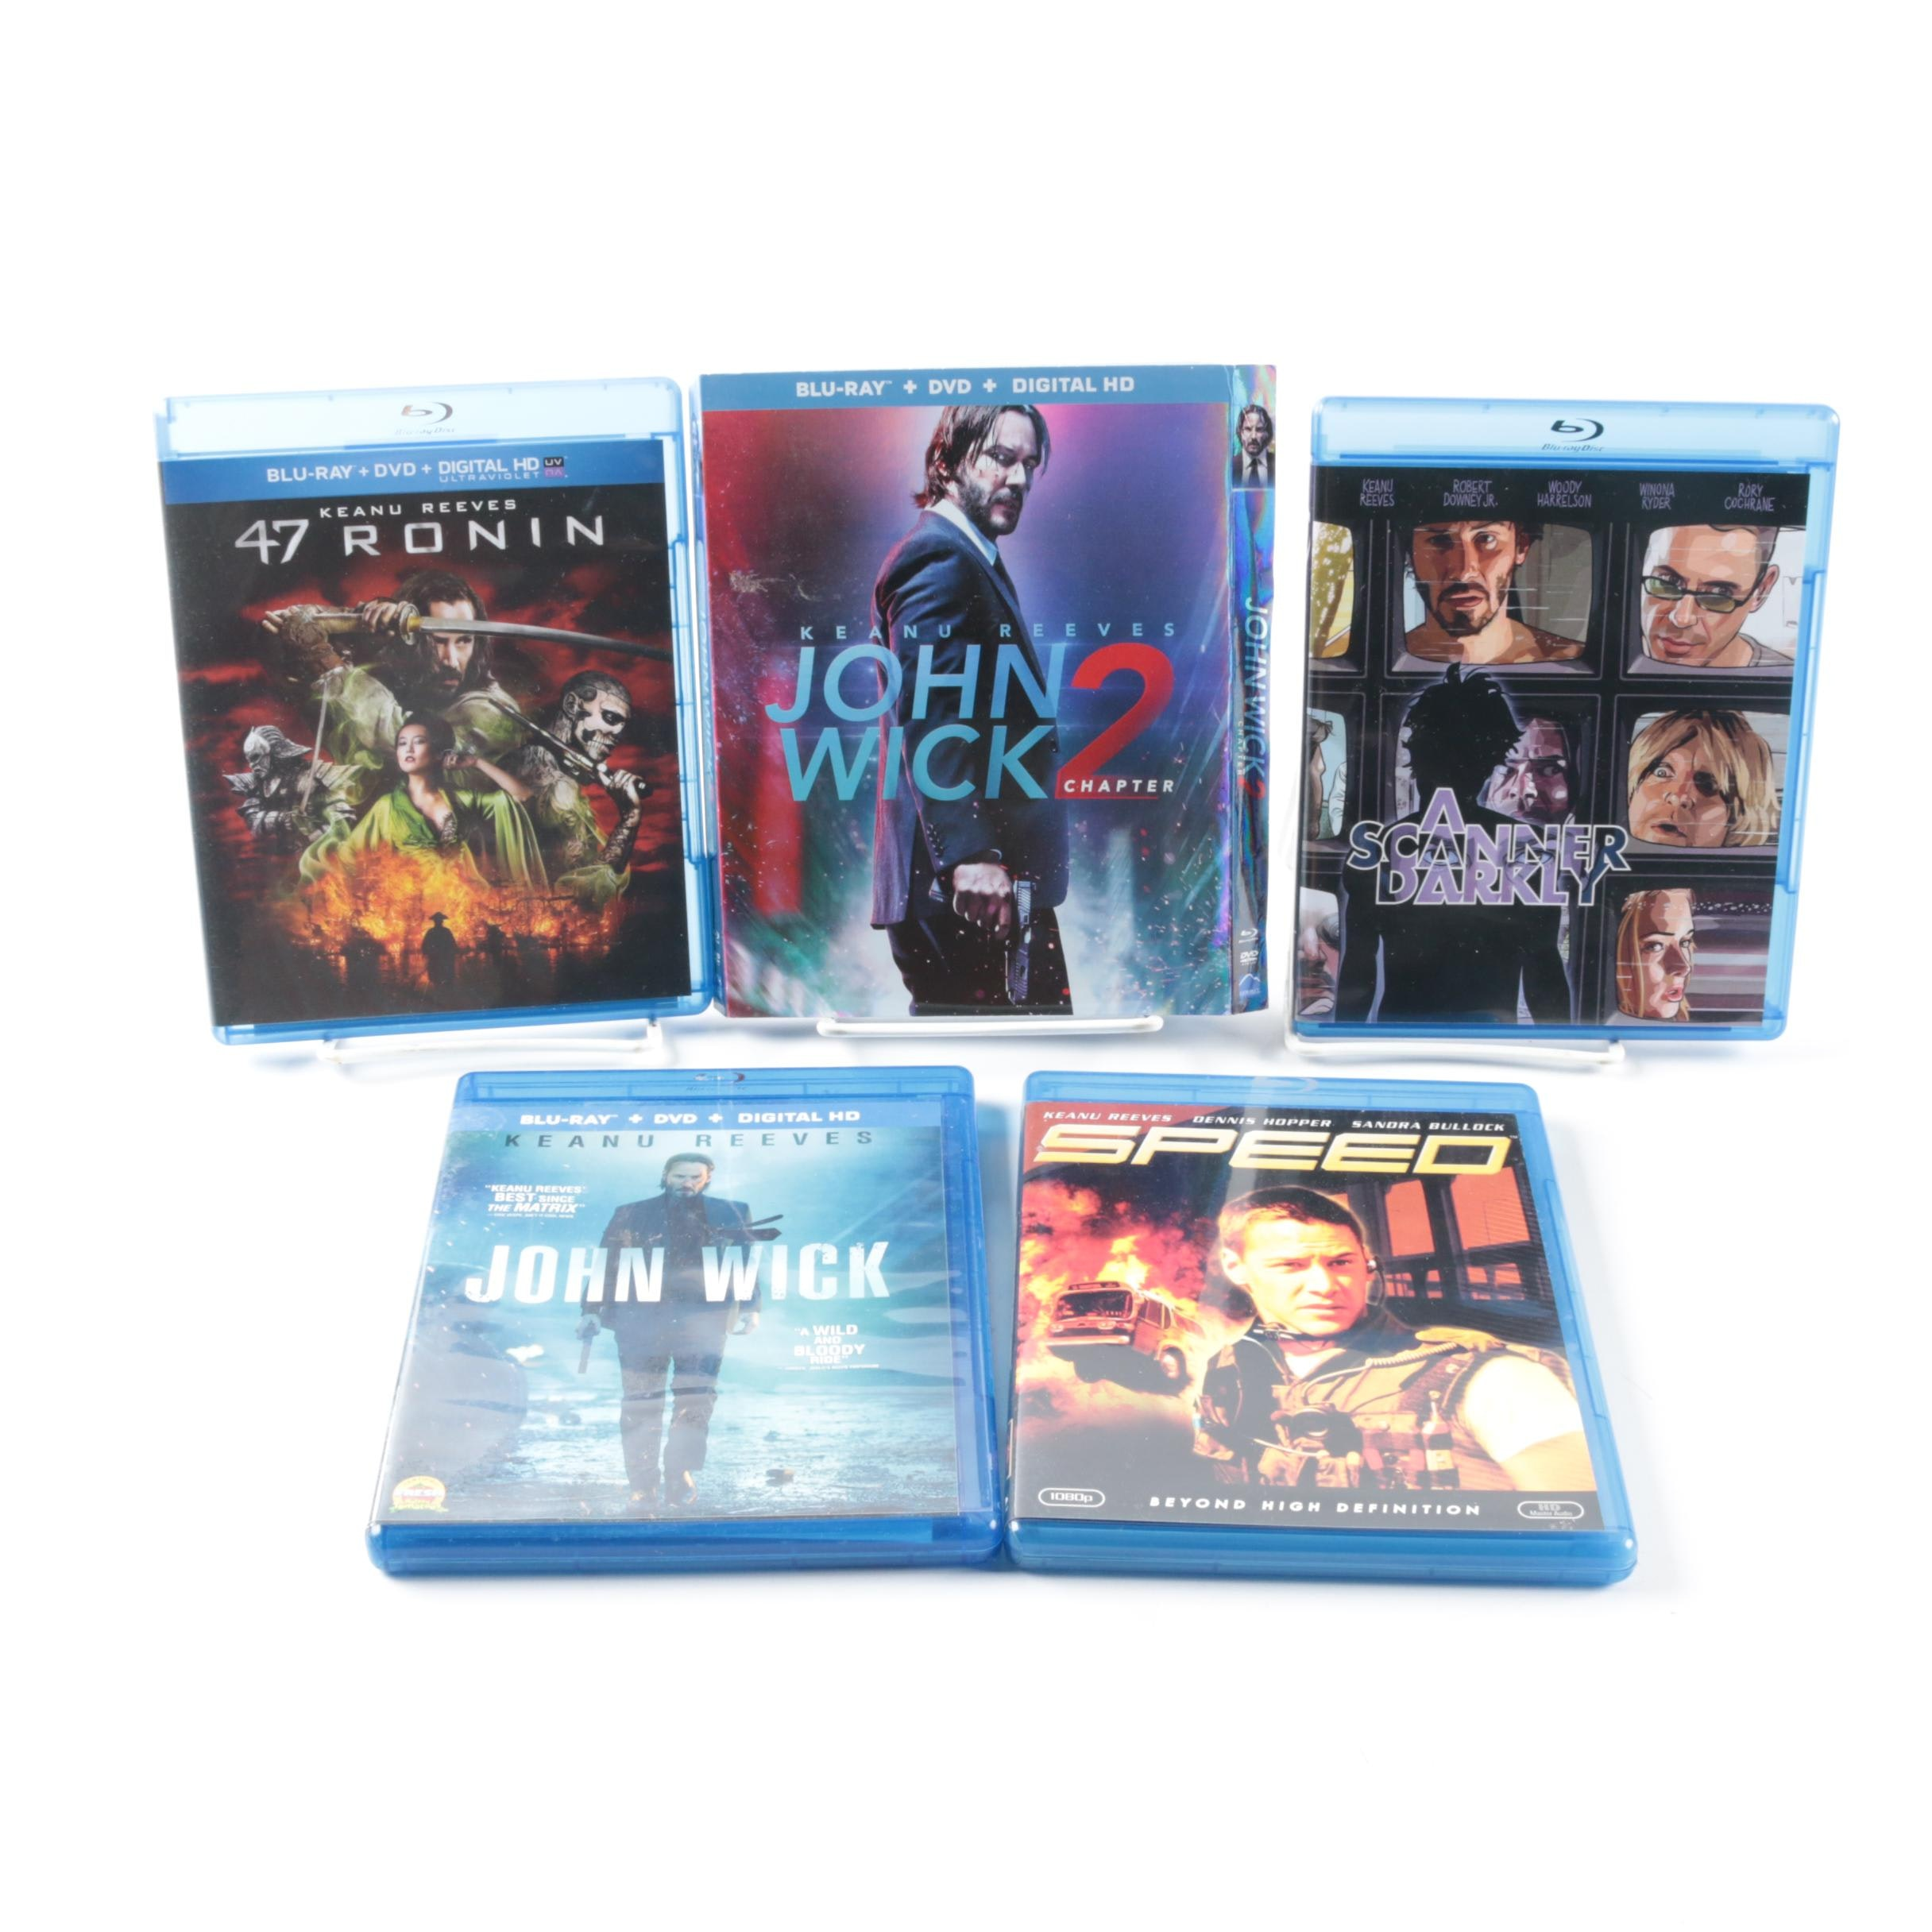 Keanu Reeves Movies on DVD and Blu-Ray